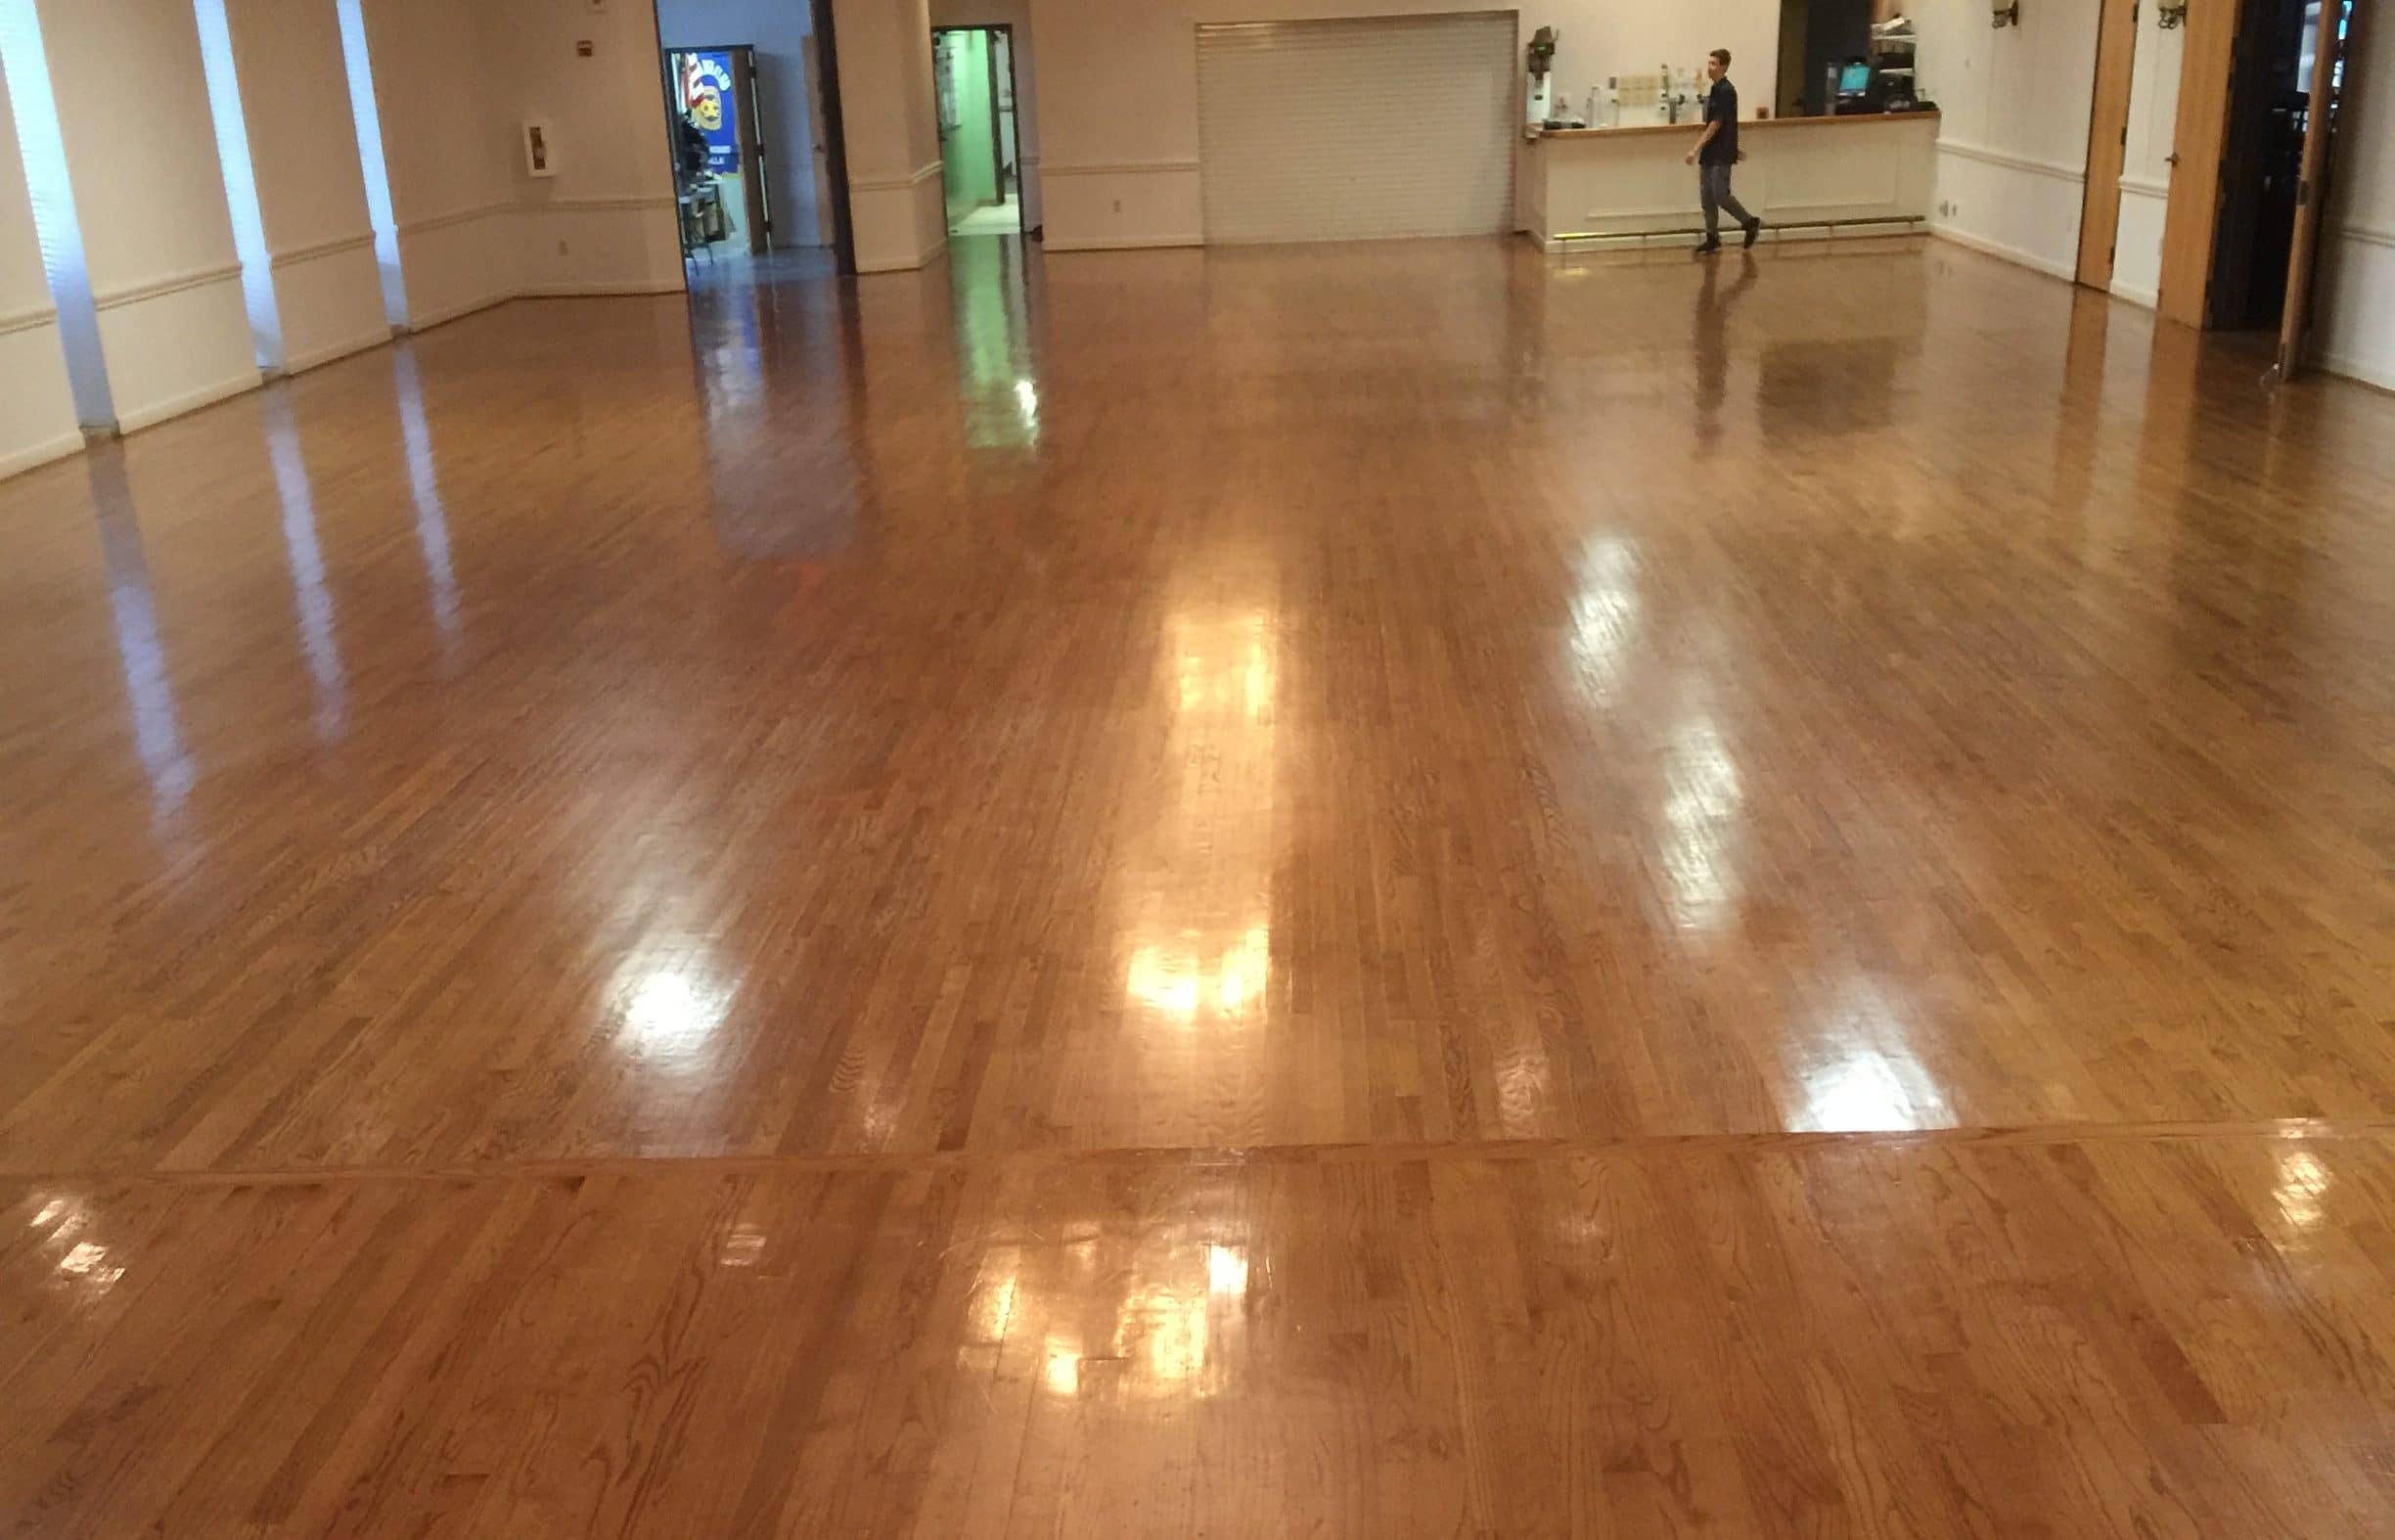 Commercial Hardwood Floor Cleaning Dallas, TX